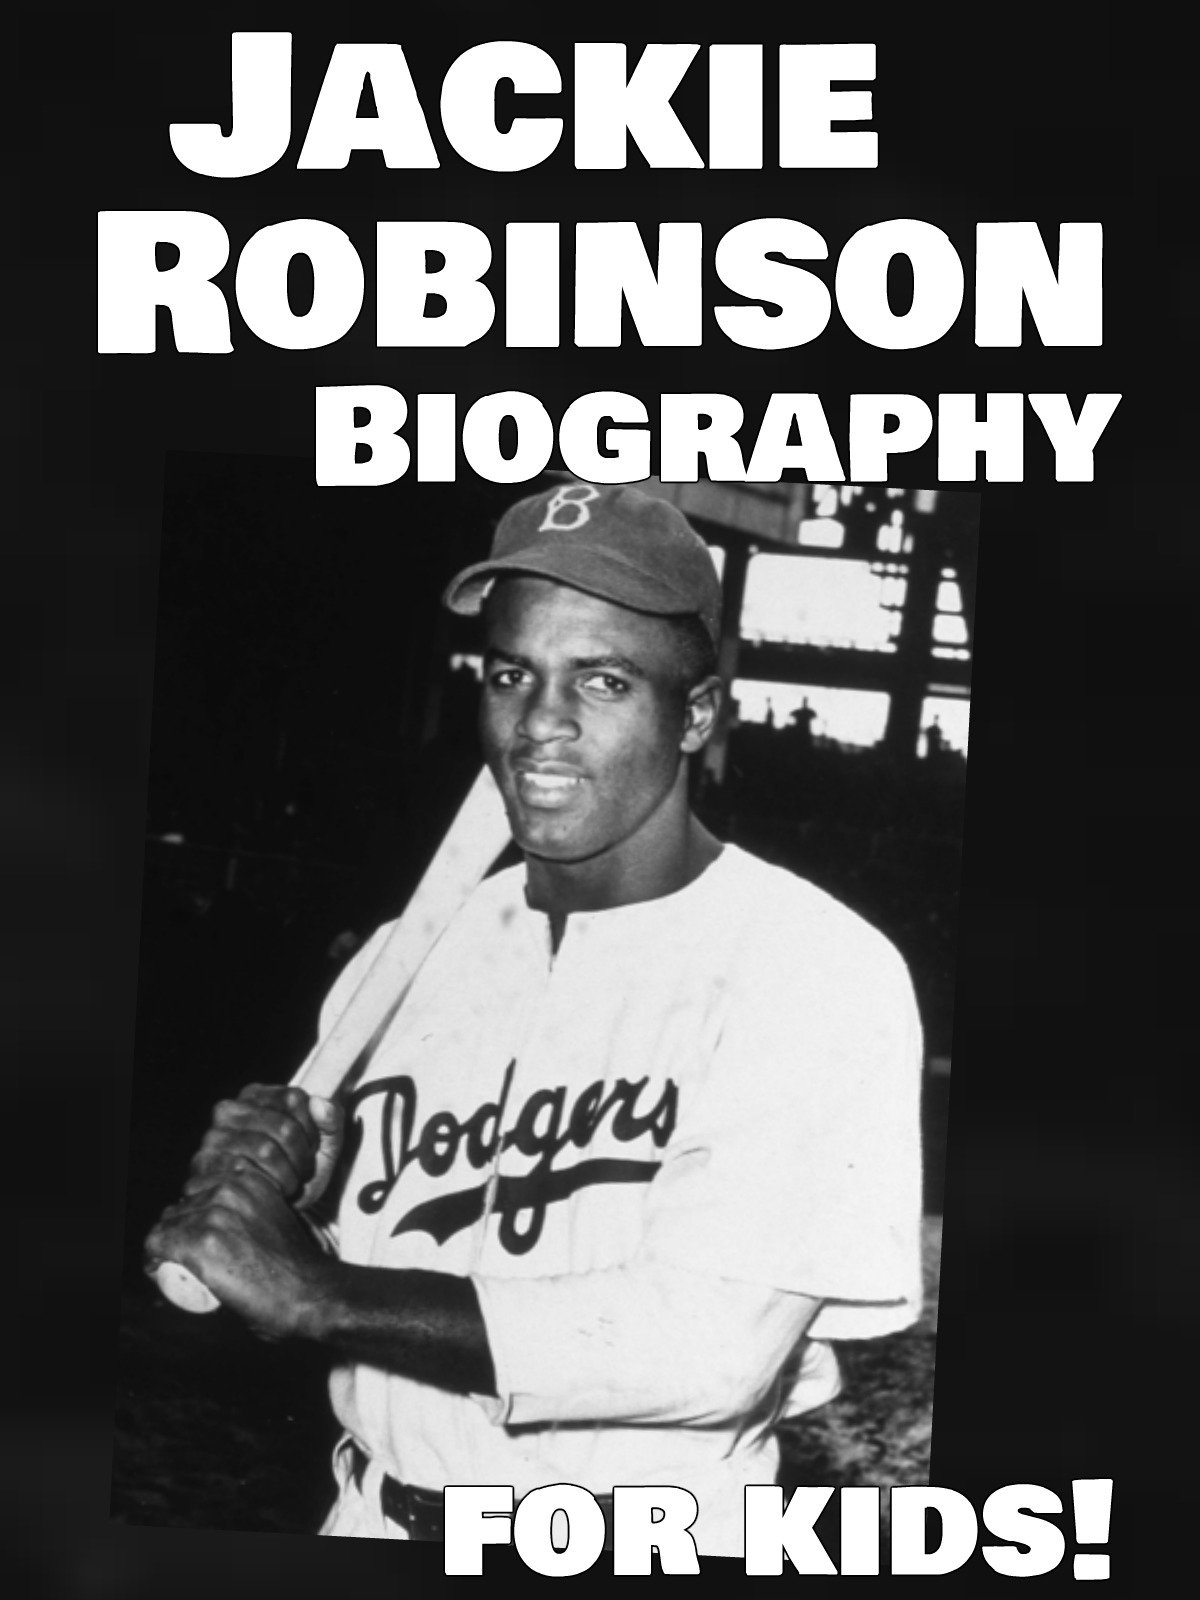 Jackie Robinson Biography for Kids!